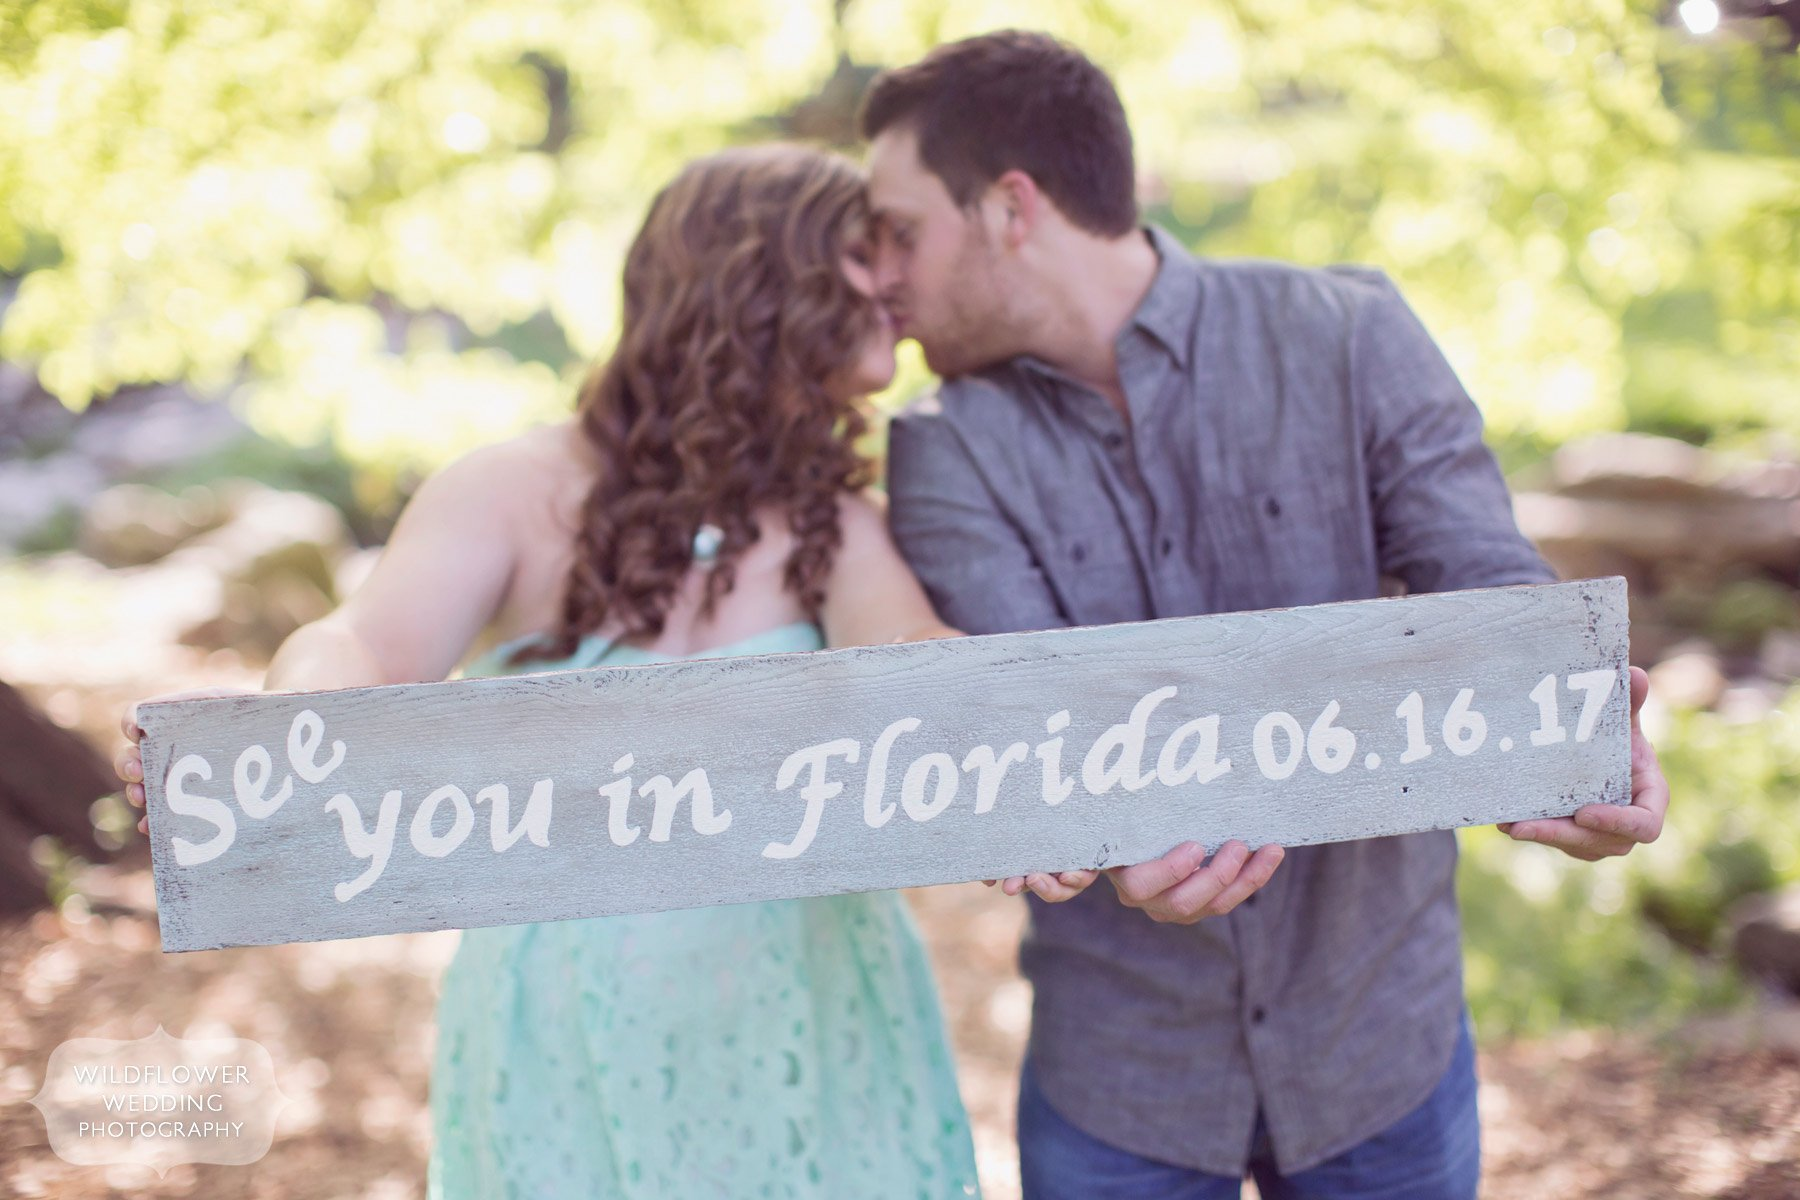 Spring engagement photography session at Peace Park in Columbia, MO. This couple is holding a rustic wood sign for their save the date card!